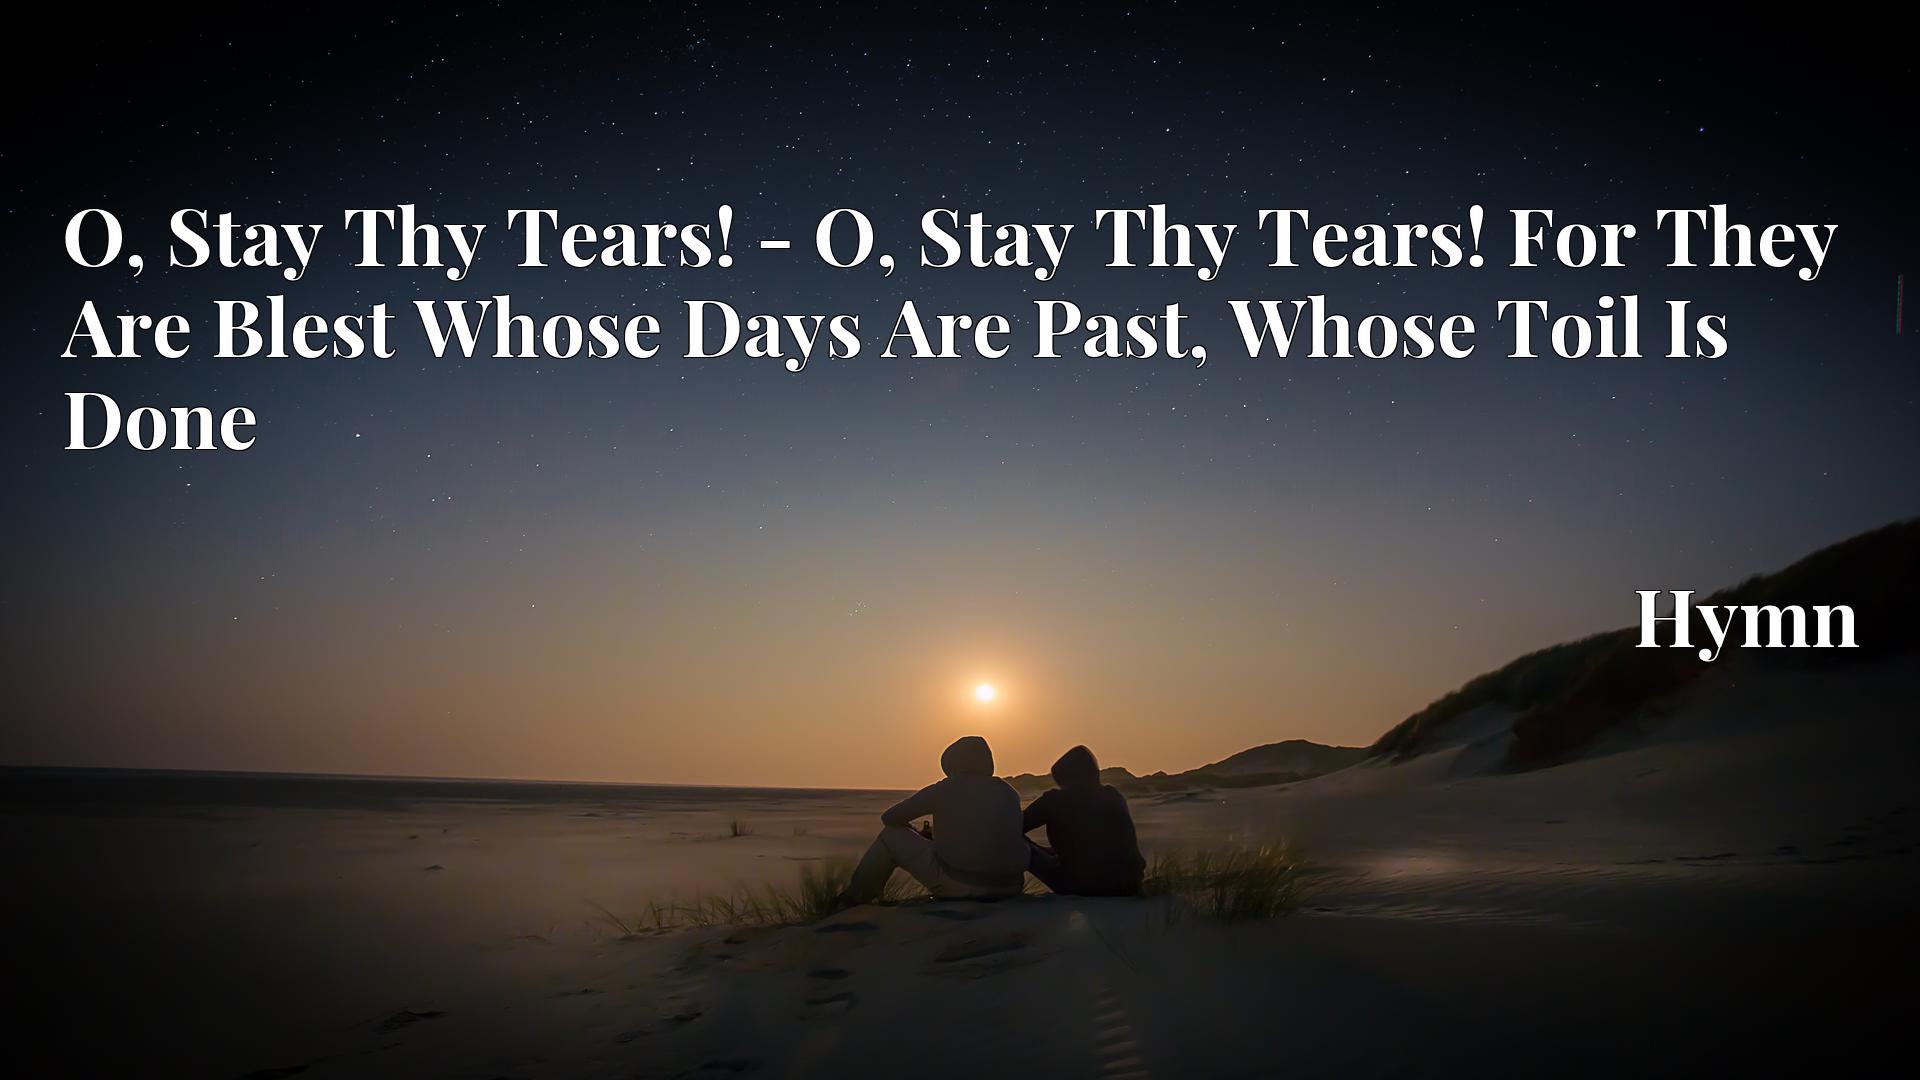 O, Stay Thy Tears! - O, Stay Thy Tears! For They Are Blest Whose Days Are Past, Whose Toil Is Done - Hymn